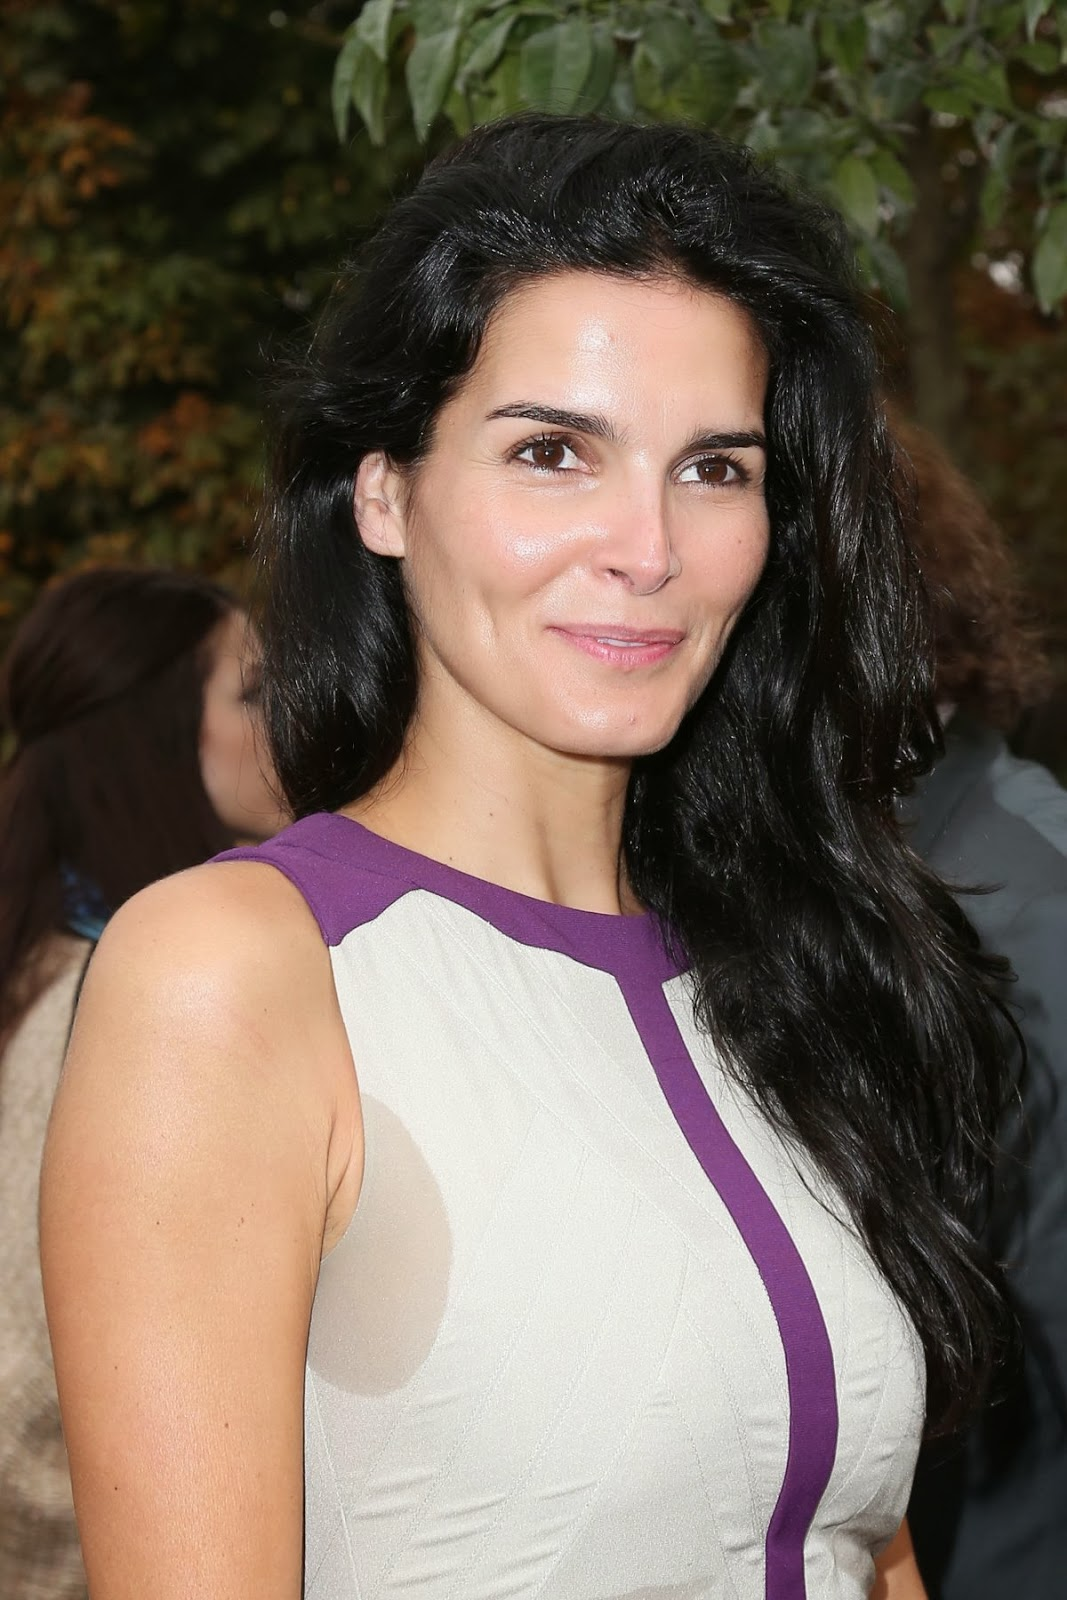 Angie Harmon At More Magazine September 2013: Latest Celebrity Photos: Angie Harmon Wallpapers